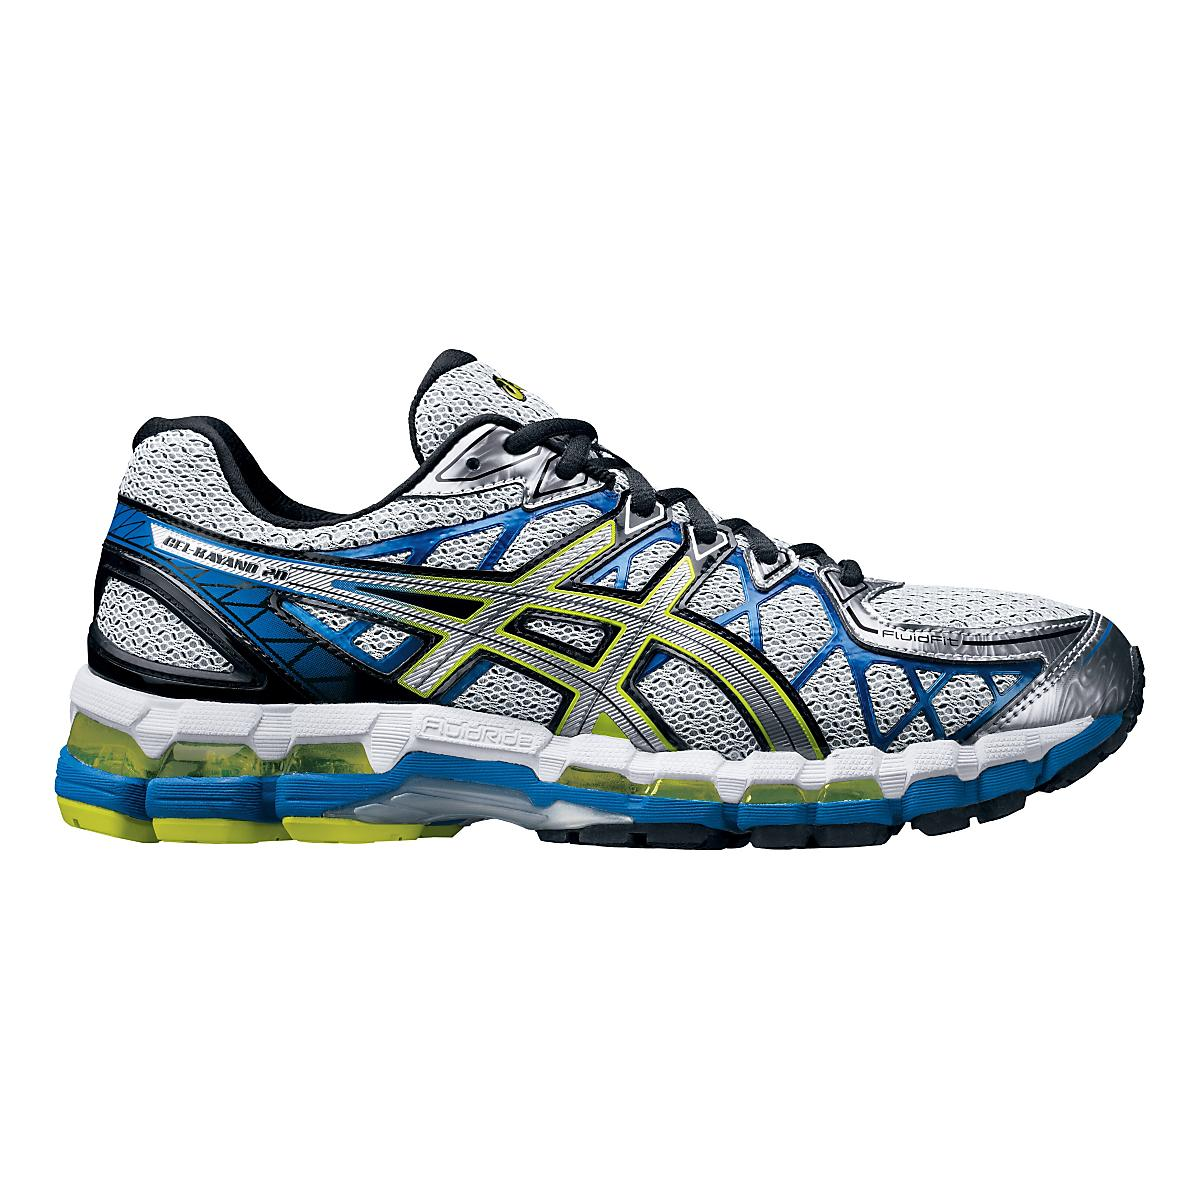 Men's GEL Kayano 20